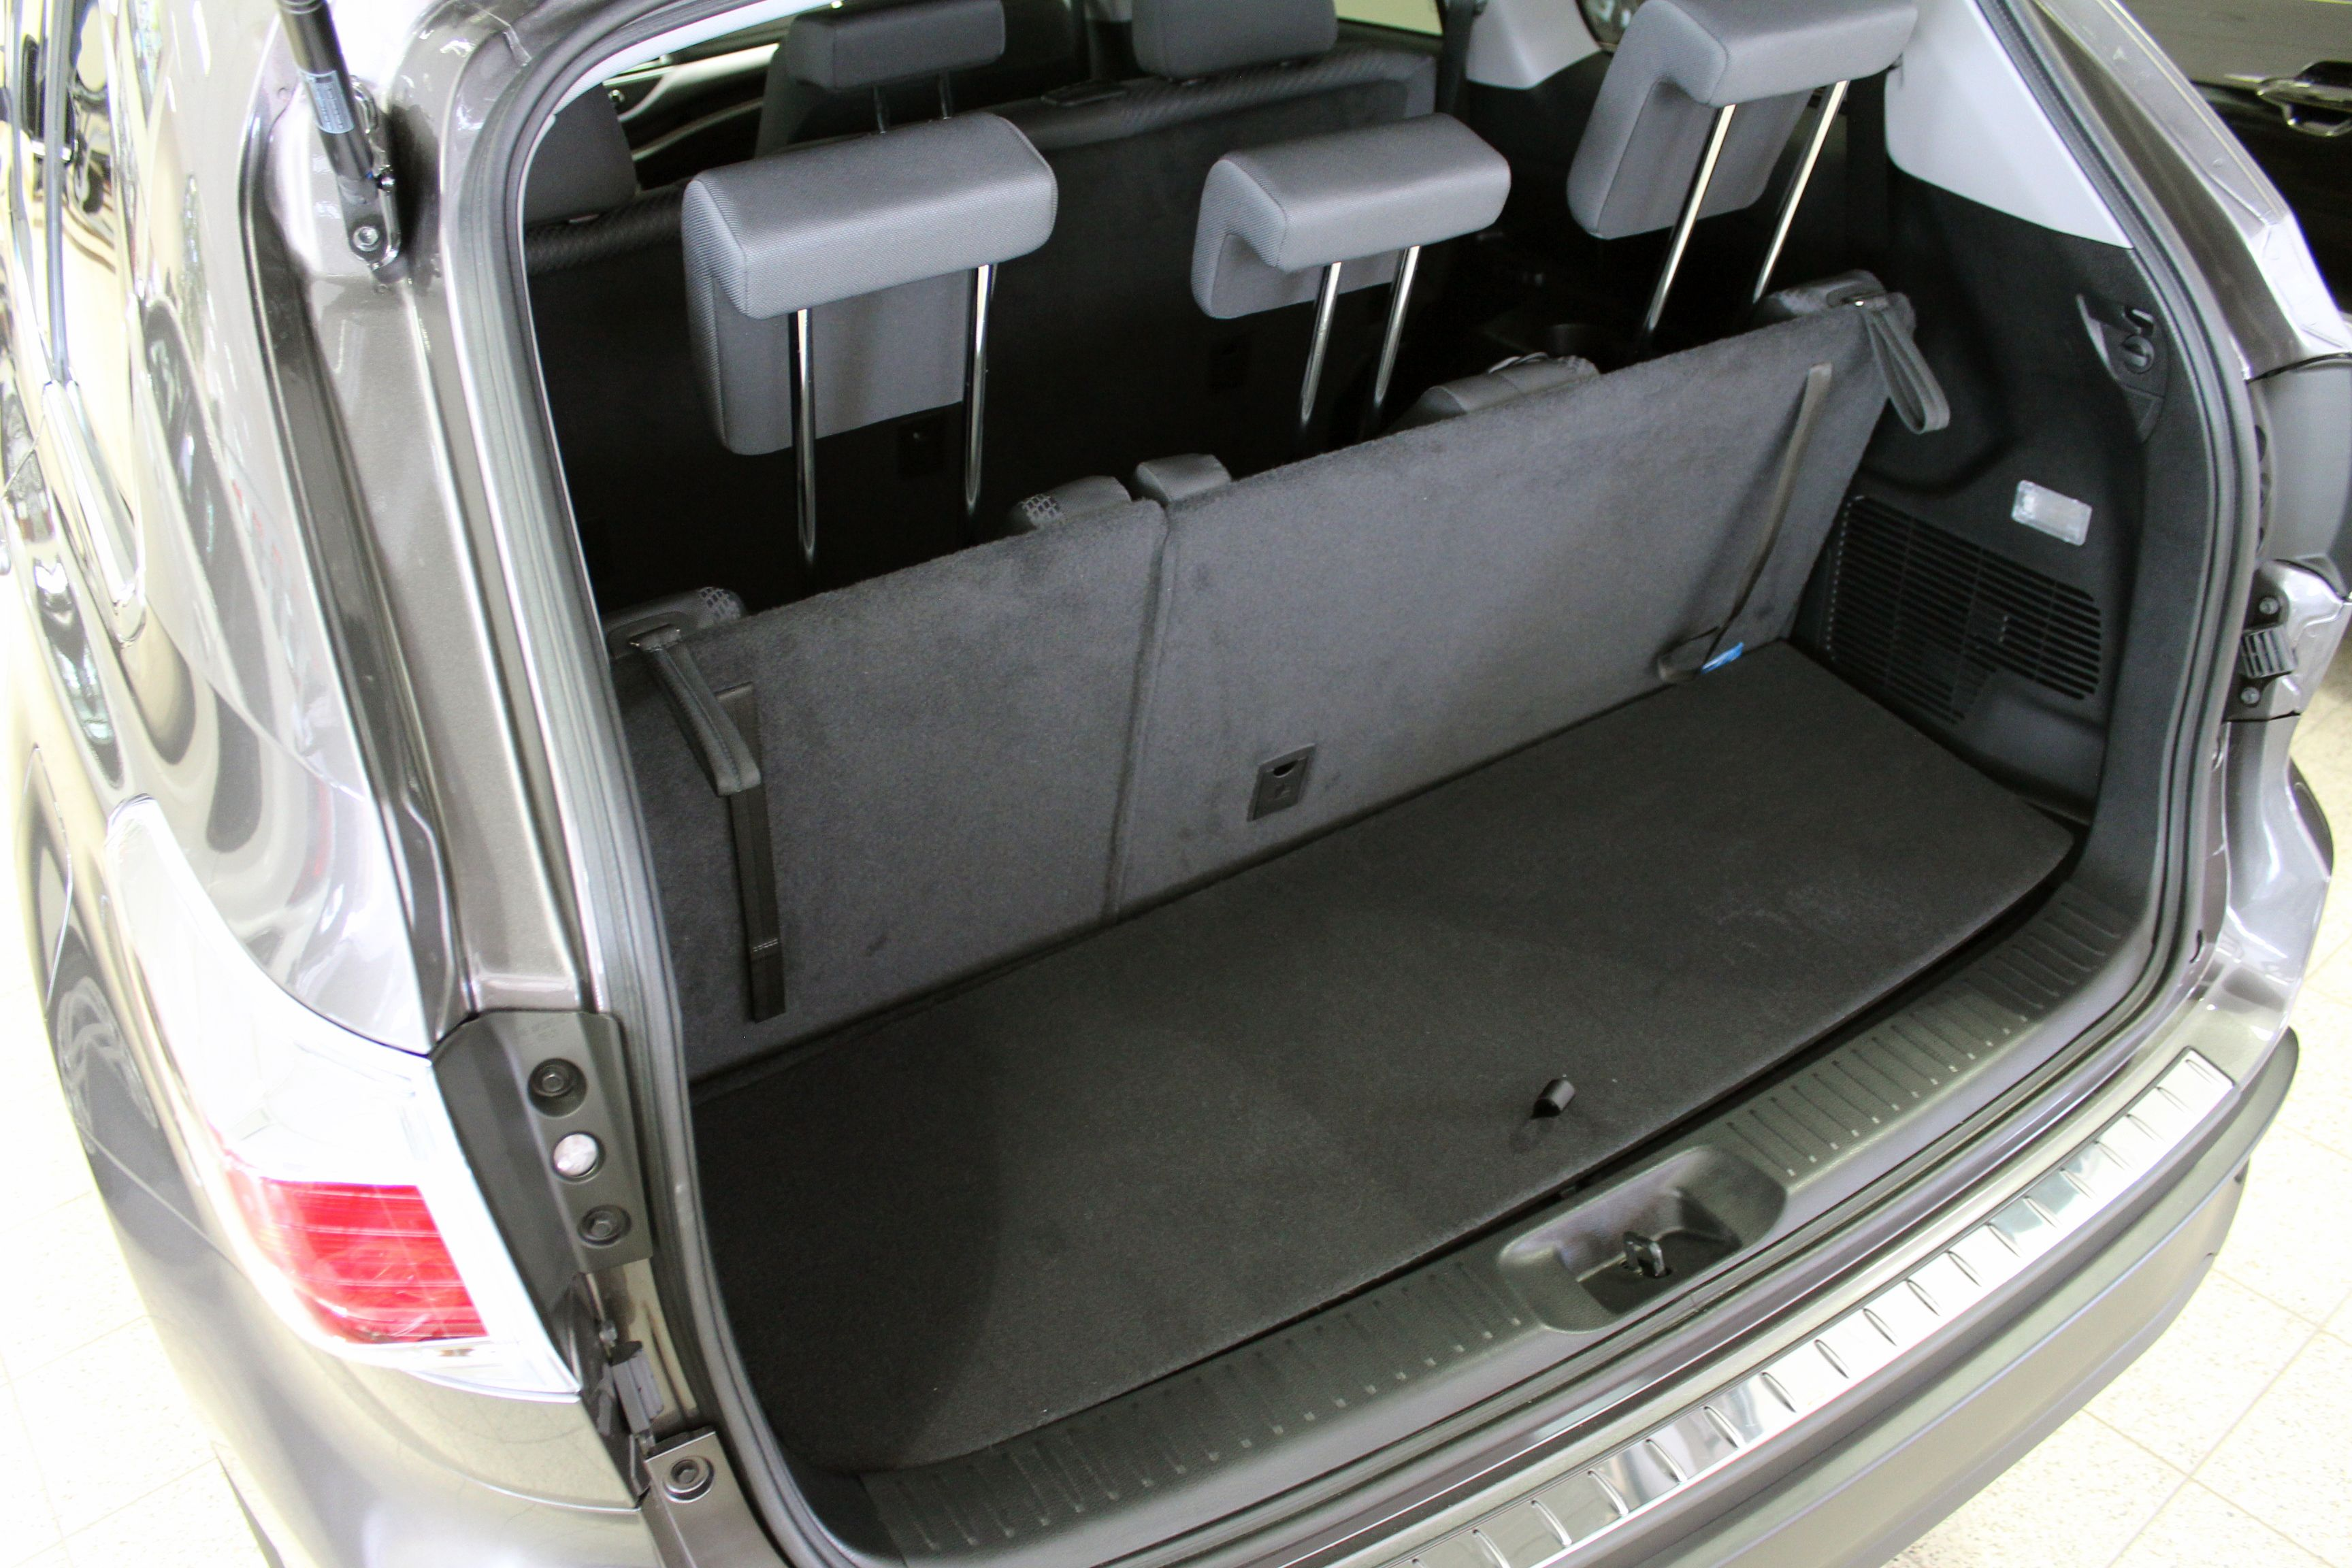 Toyota Highlander Cargo Space >> 2014 Toyota Highlander cargo space | Car seats, 2015 ...